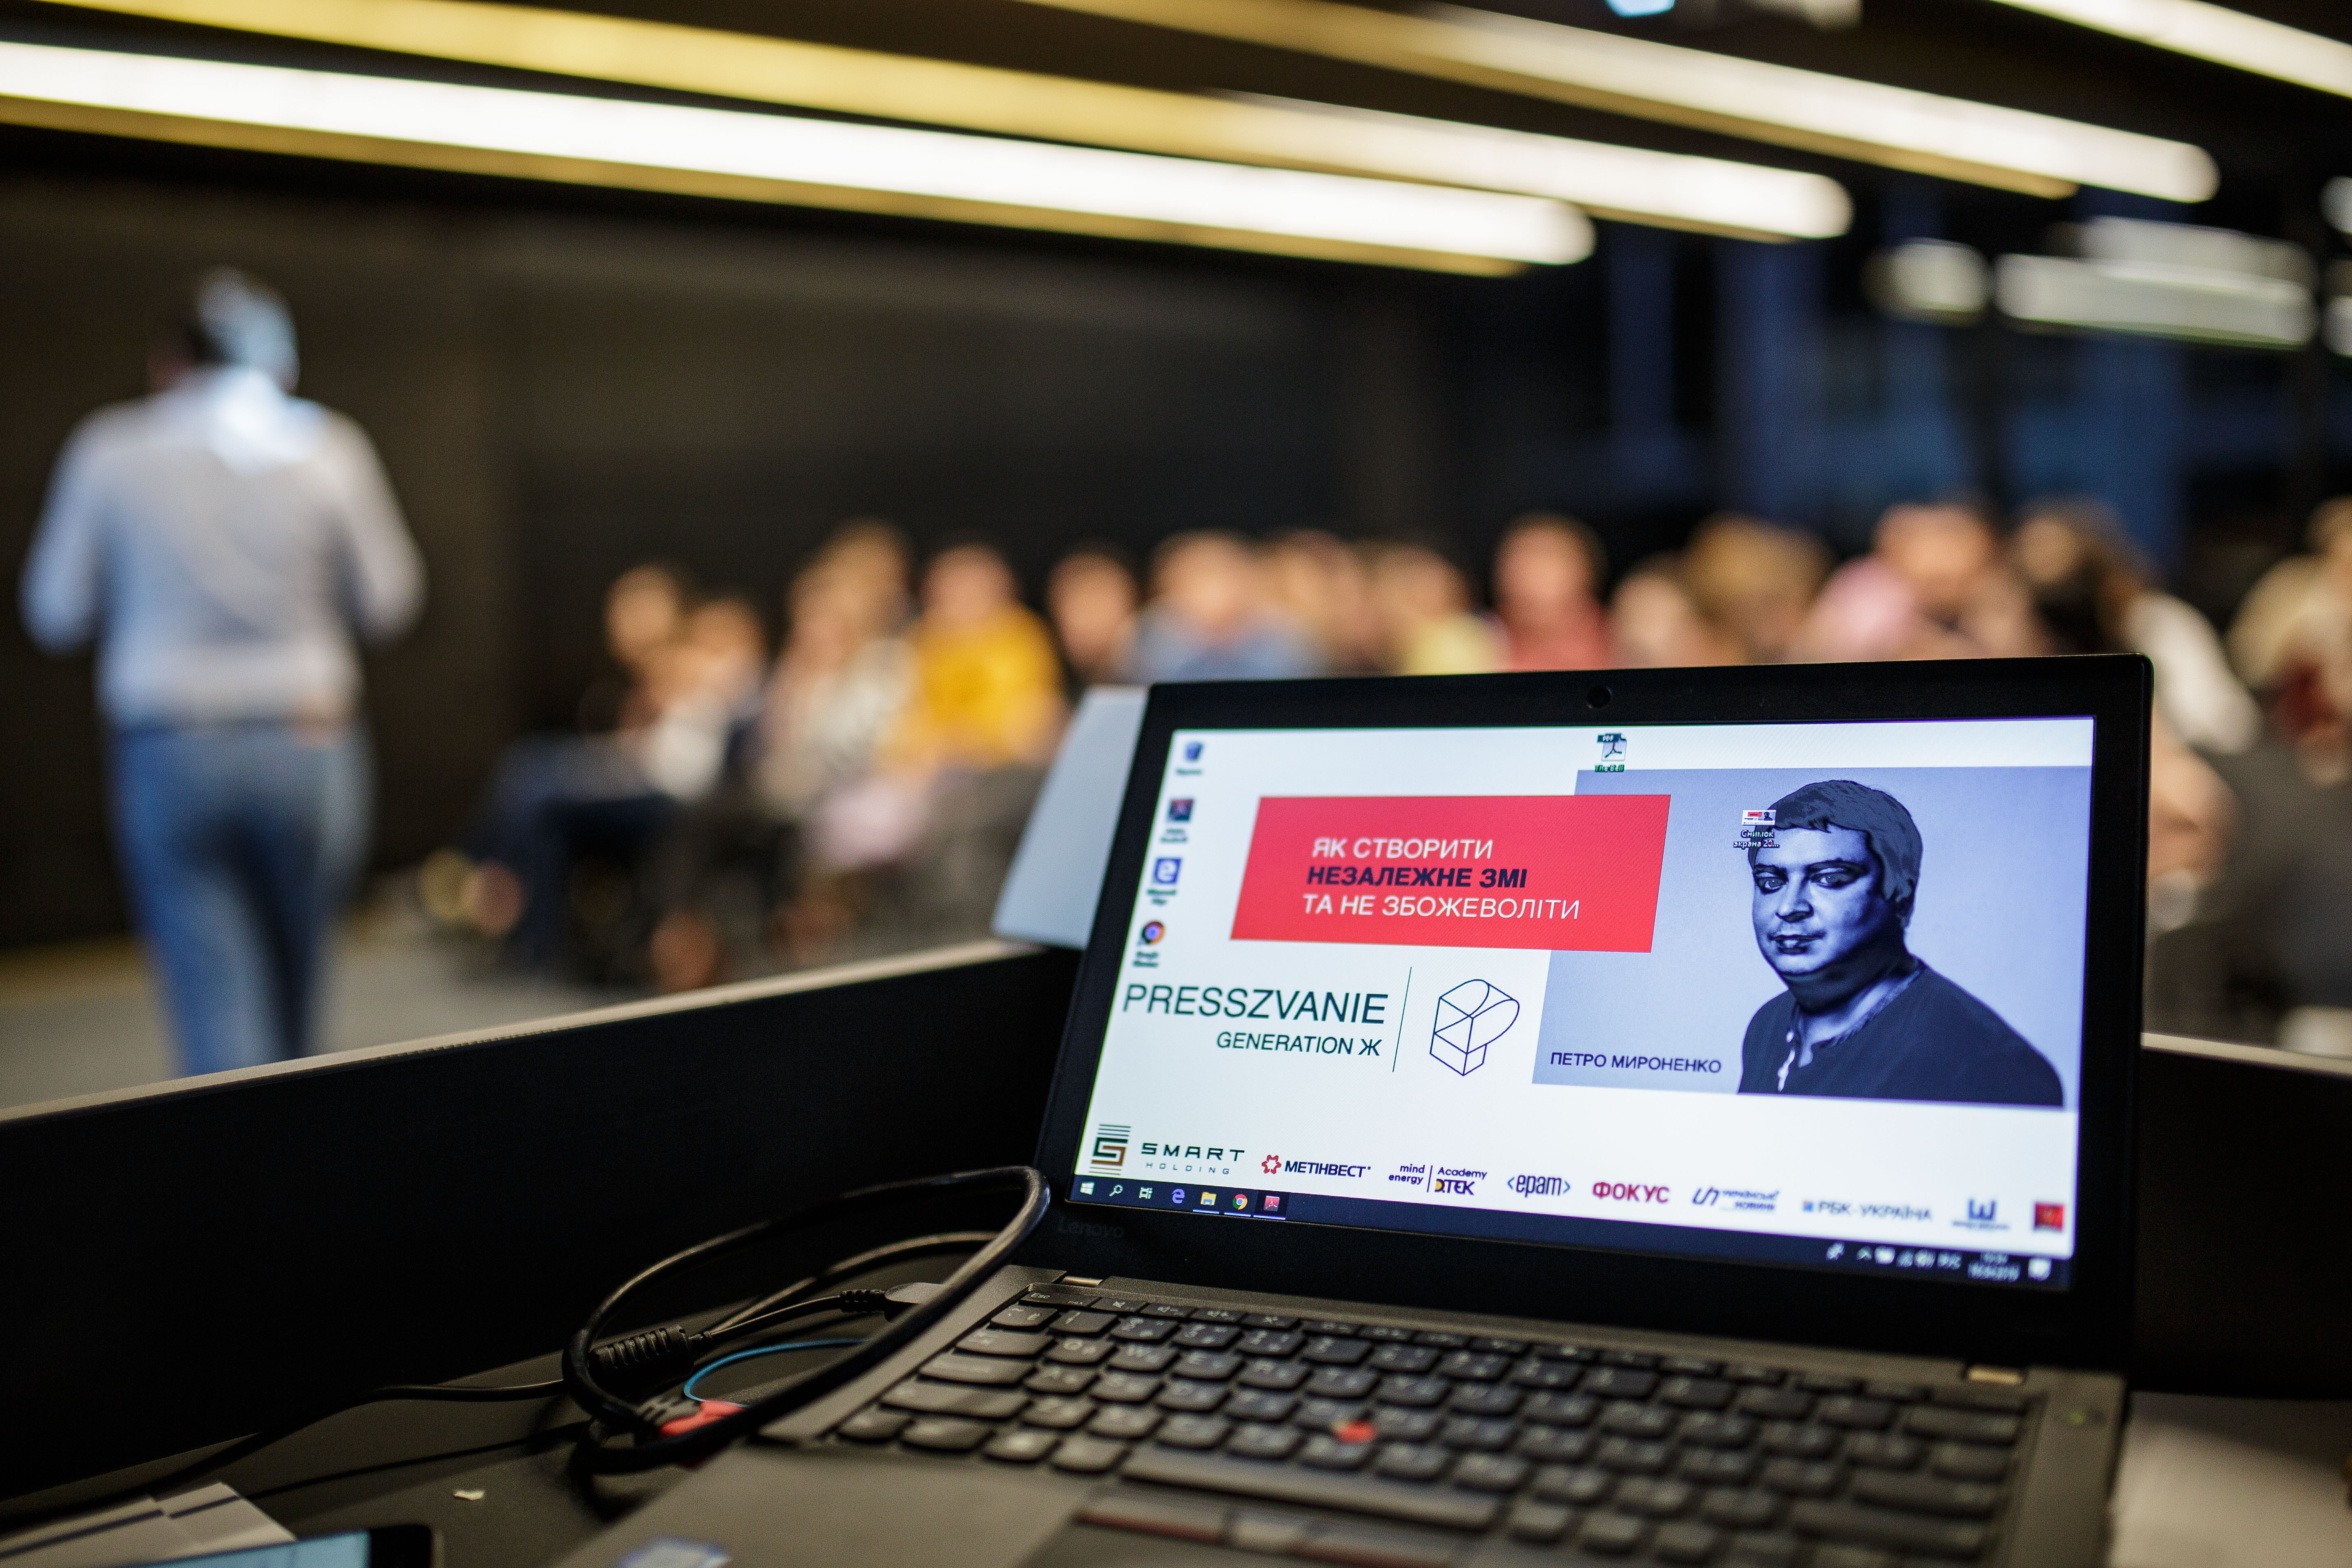 MAINSTREAM held a workshop for annual PRESSZVANIE awards